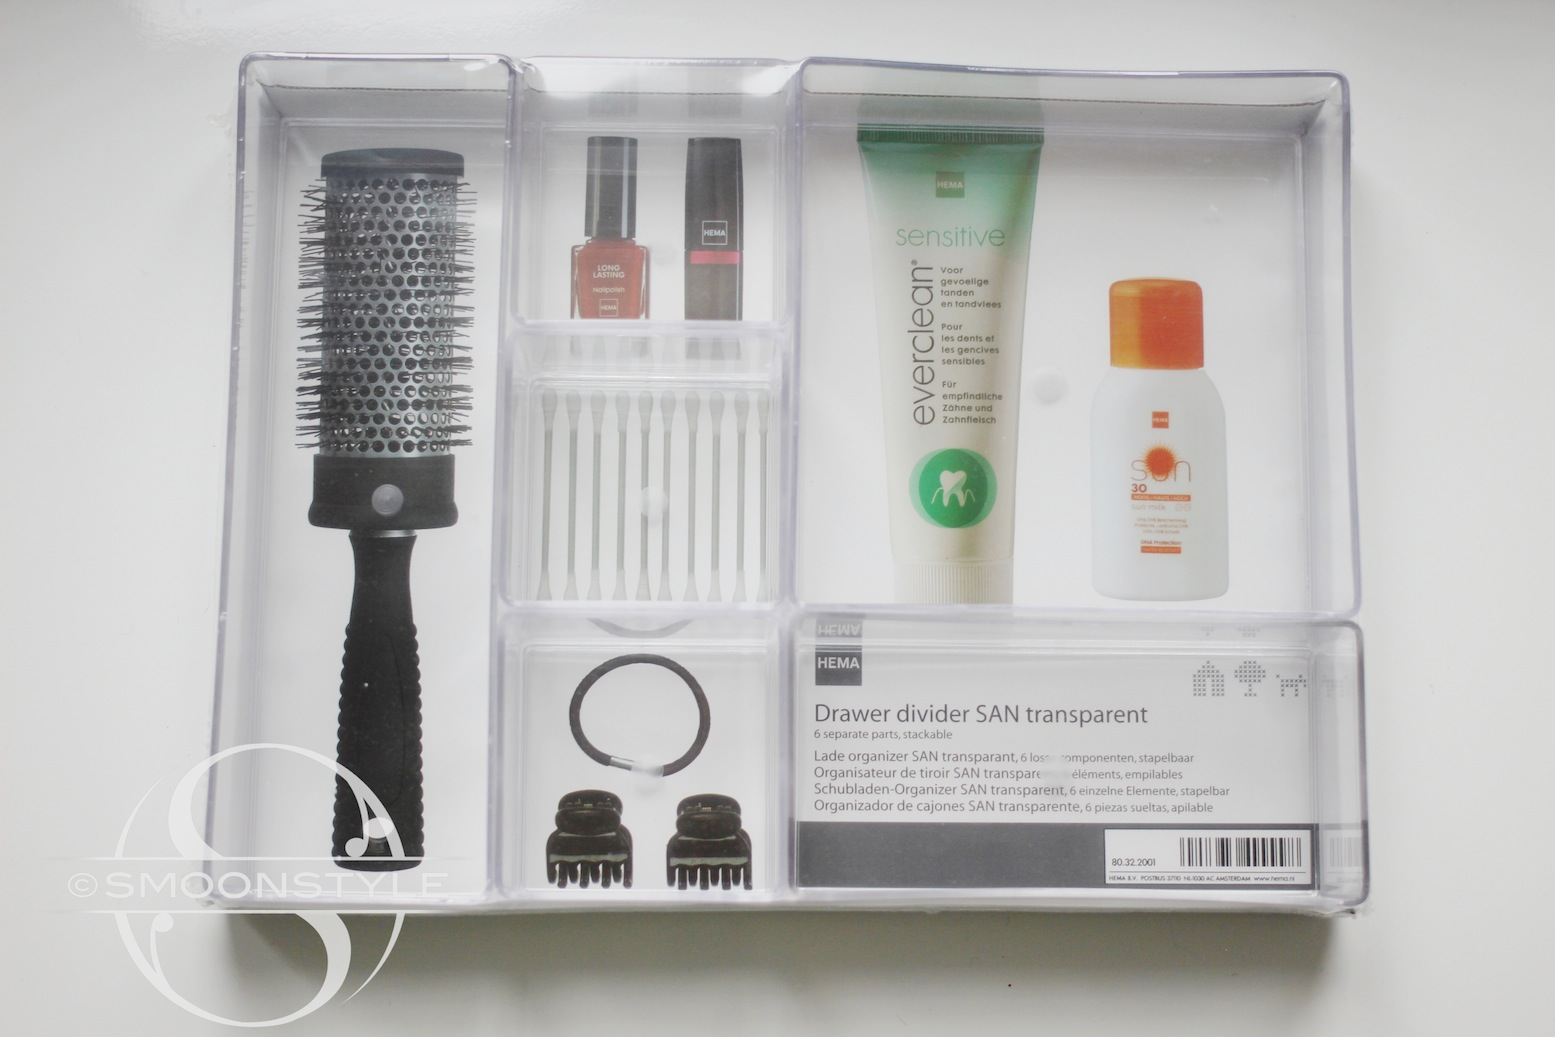 Ladeverdeler Ikea Everyday Make Up Storage Smoonstyle